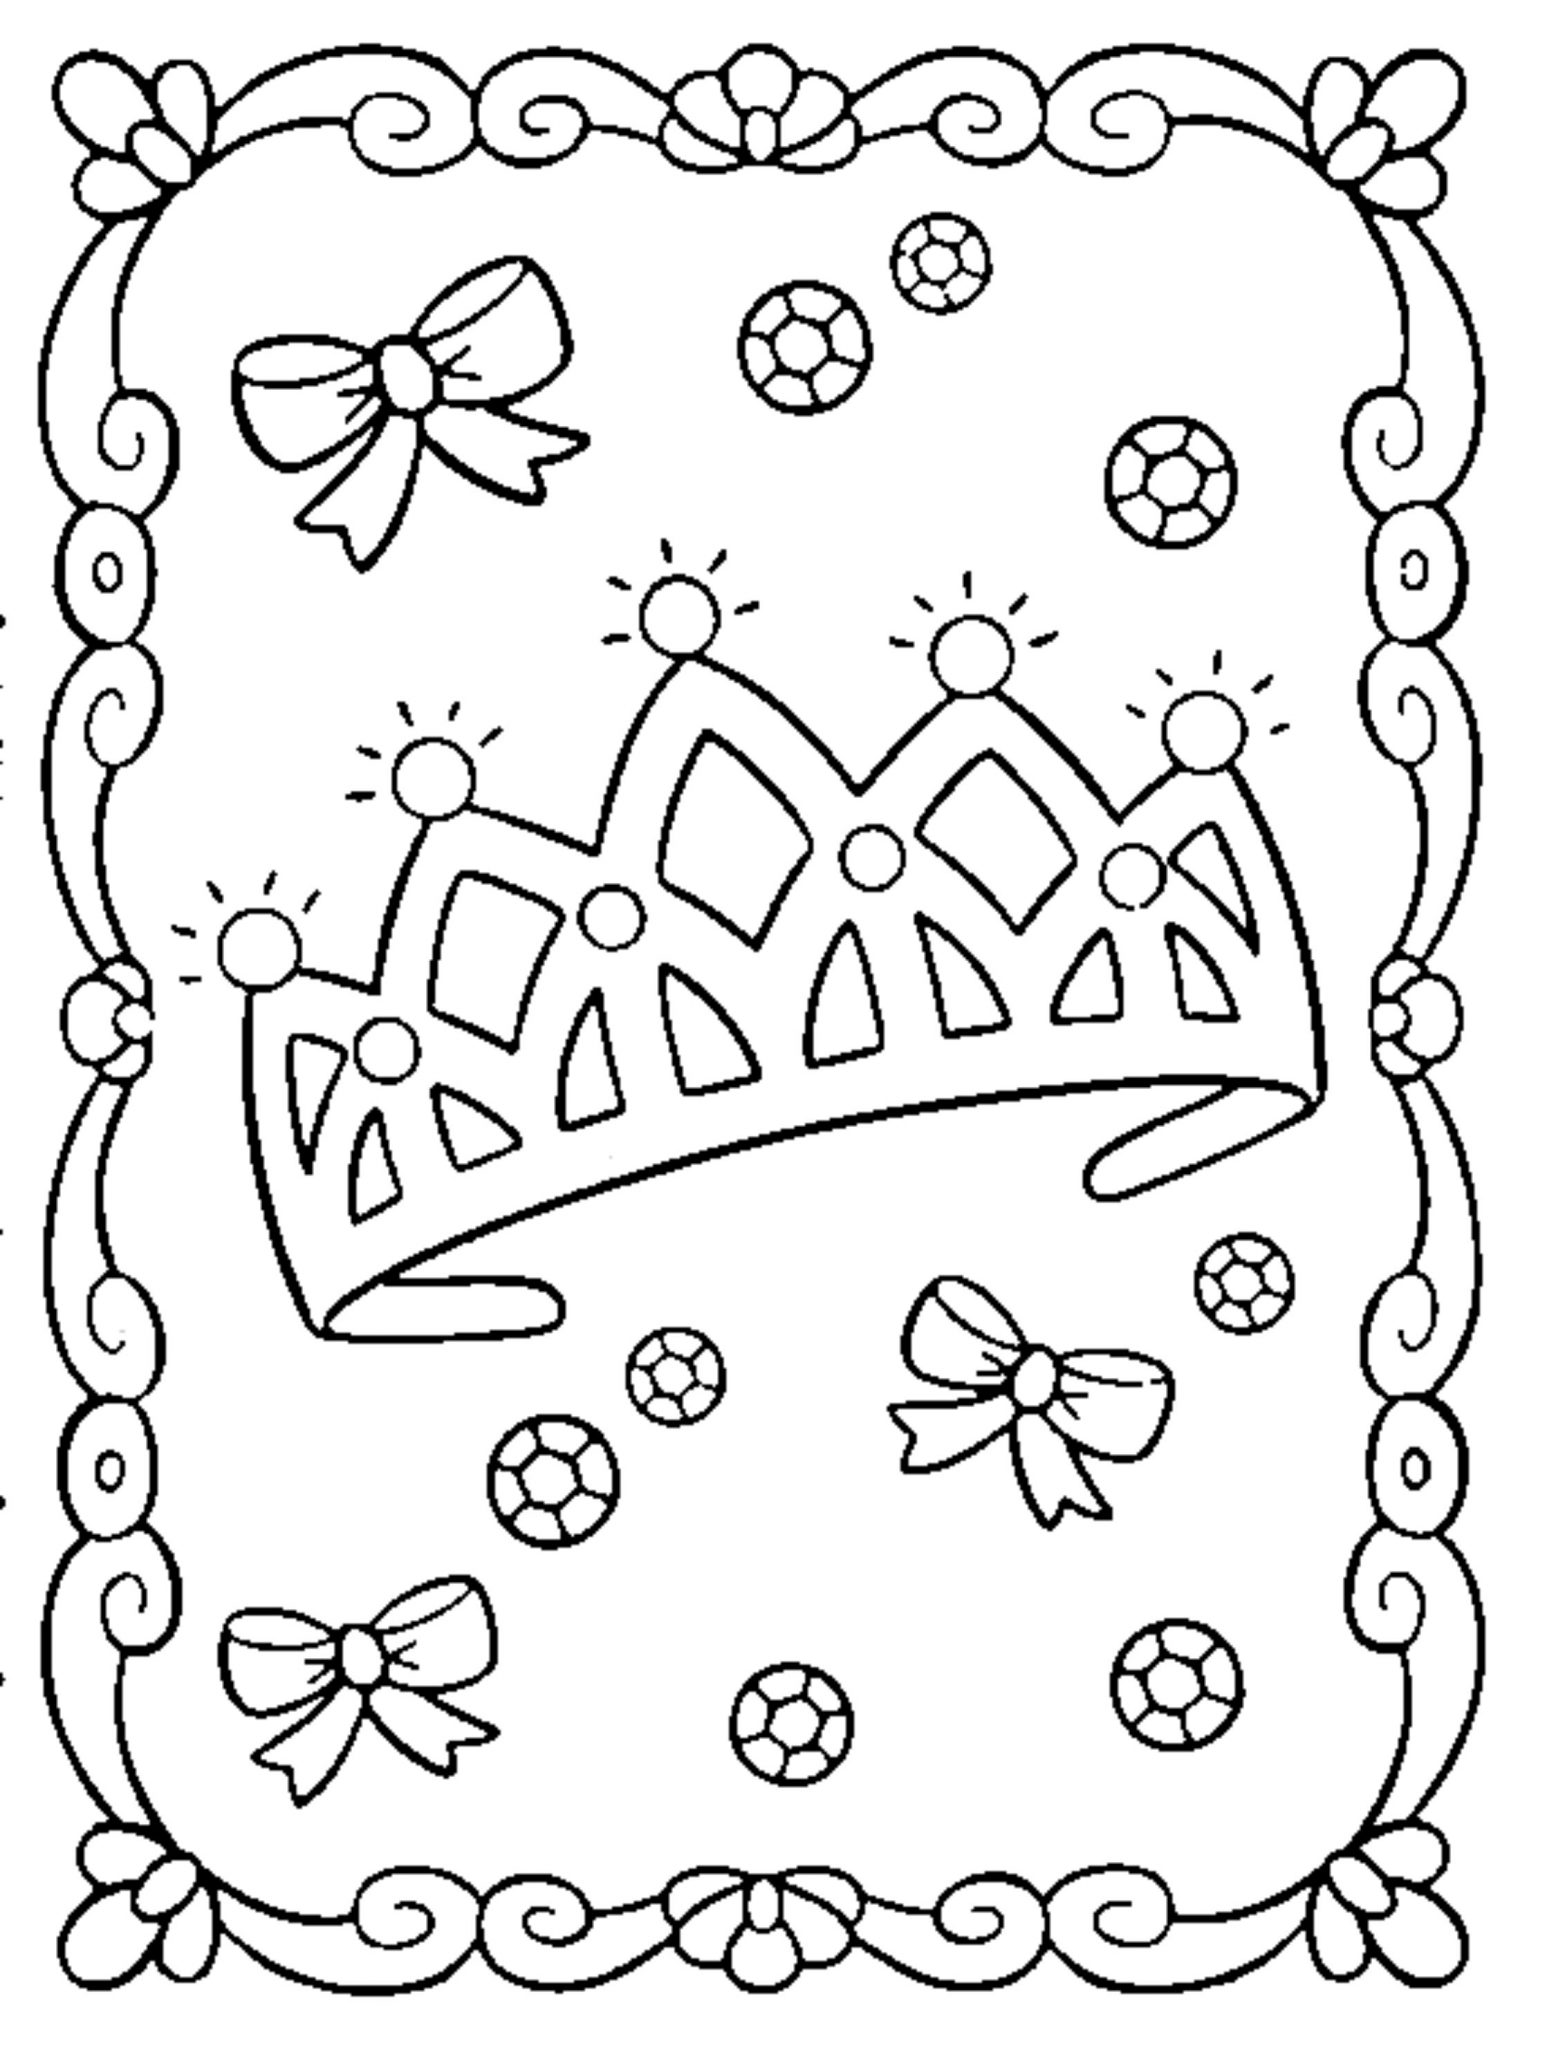 princess coloring pages online full page princess coloring pages coloring home princess coloring online pages